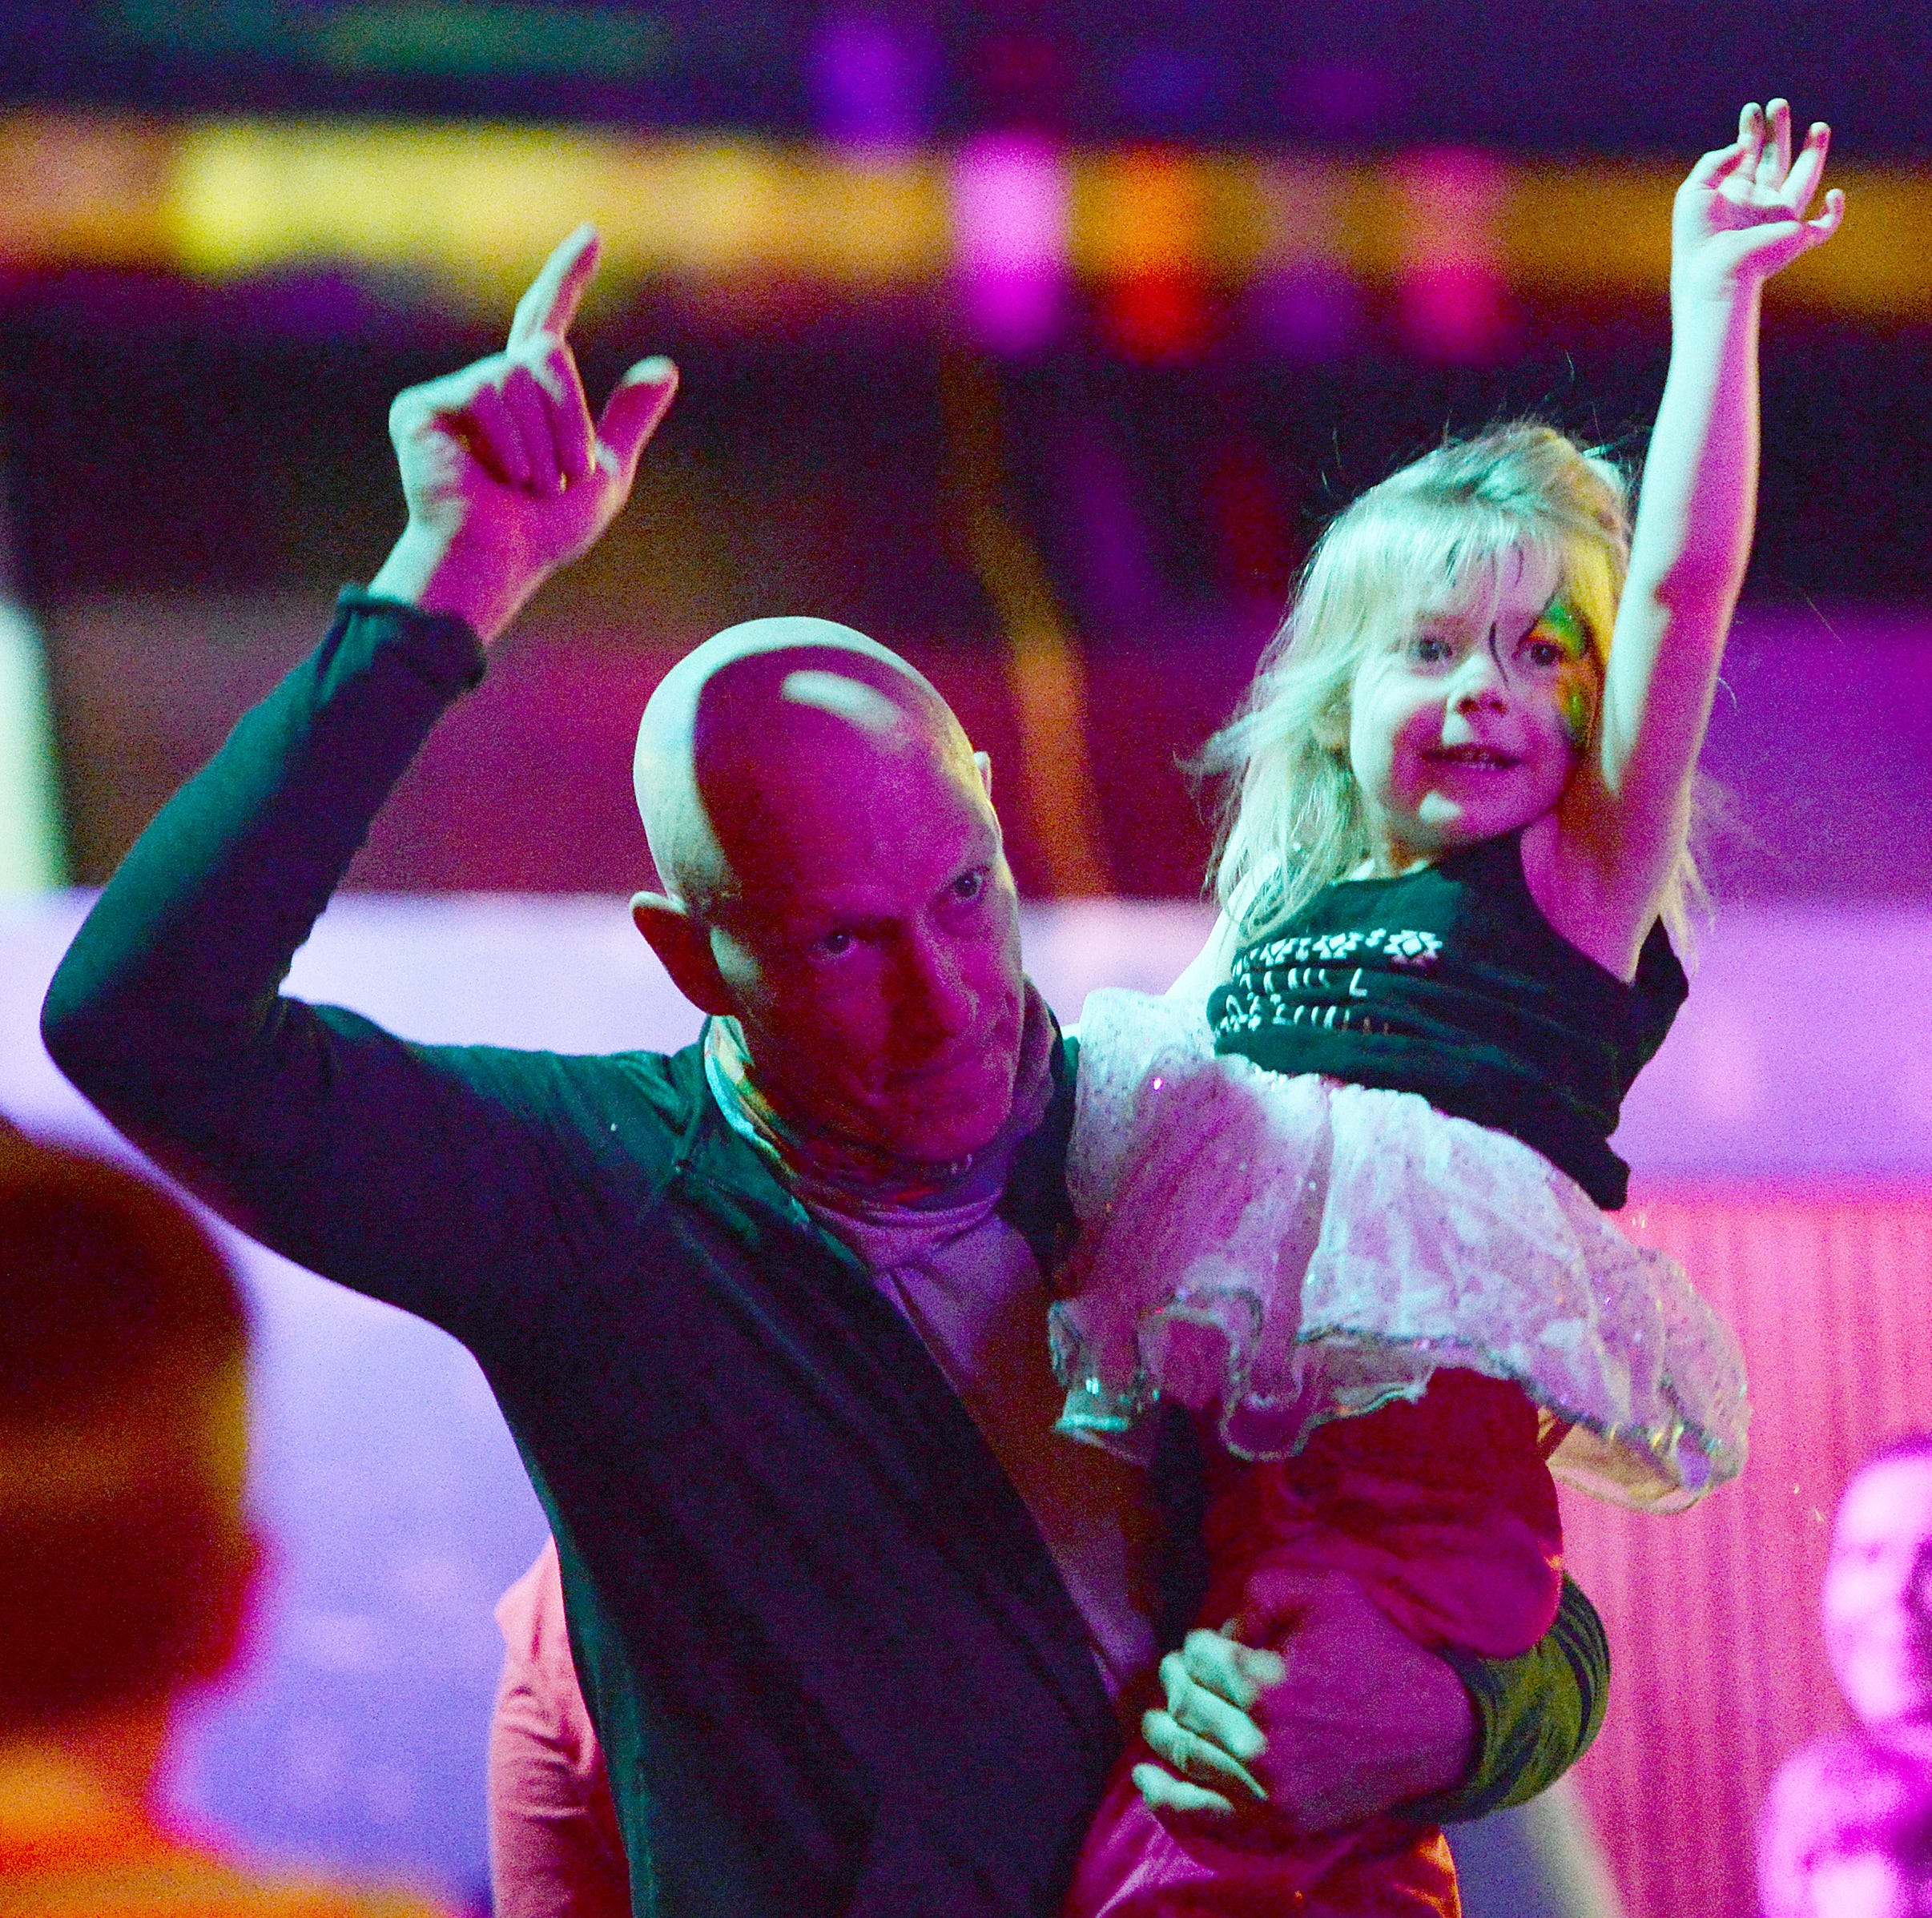 Have fun inside: 7 family-friendly events and places to get the wiggles out